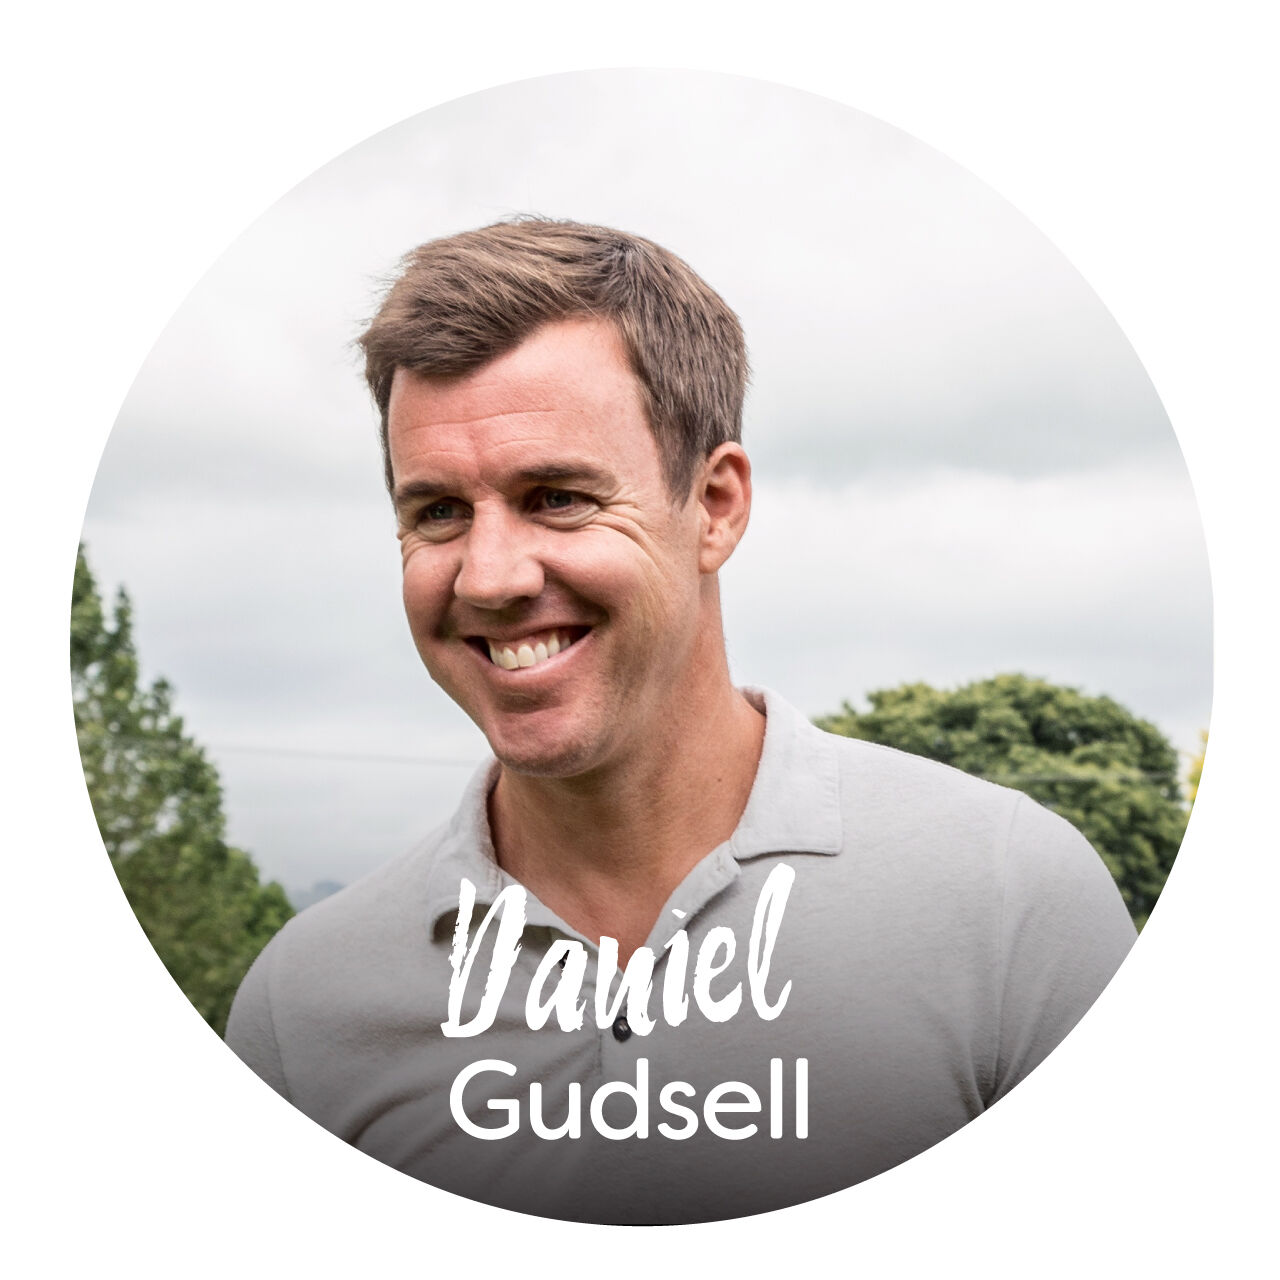 A picture of Daniel Gudsell